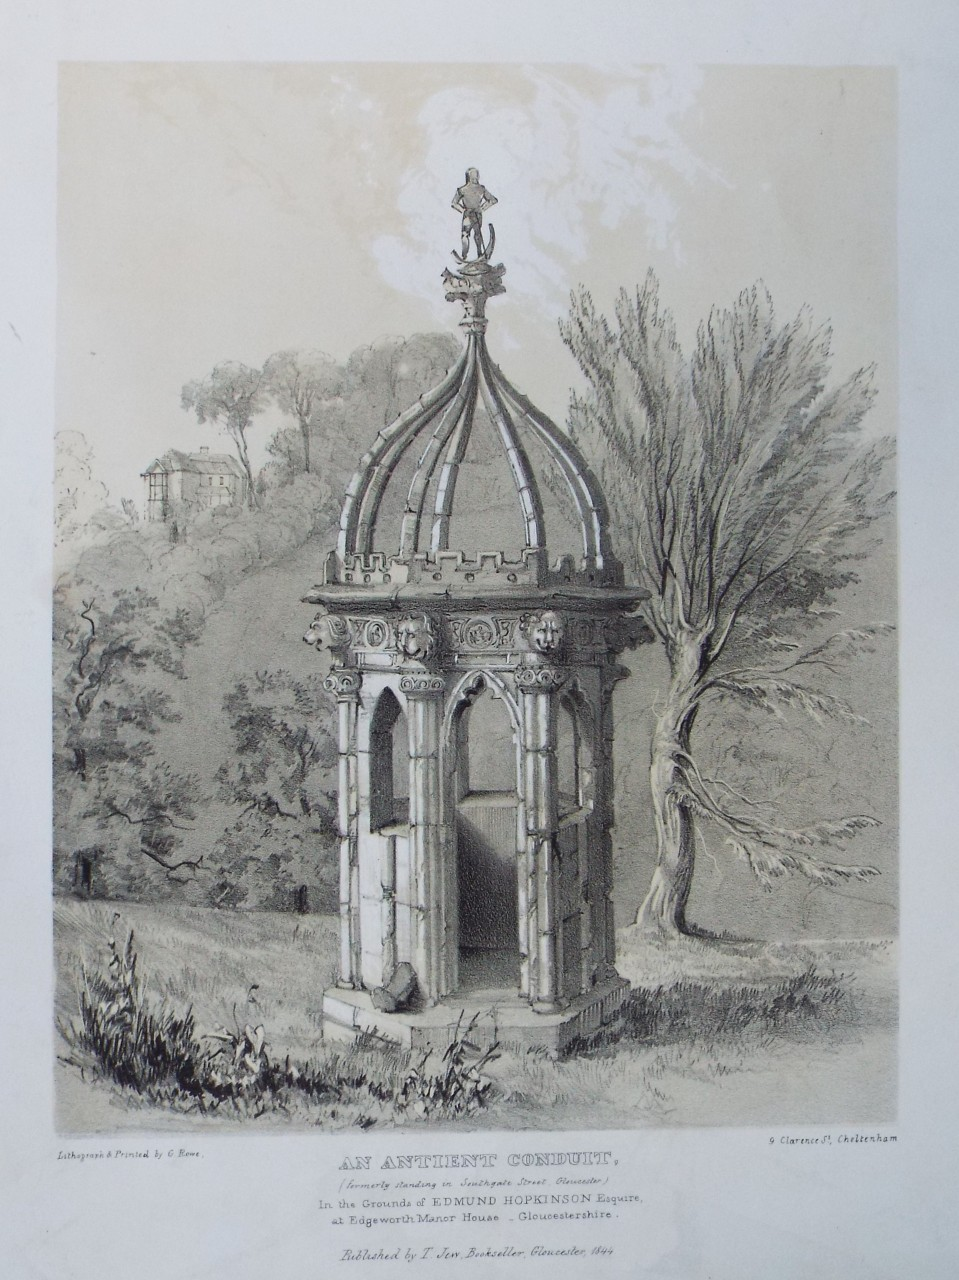 Lithograph - An Antient Conduit, (formerly standing in Southgate Street Gloucester) In the Grounds of Edmund Hopkinson Esquire, at Edgeworth Manor House Gloucestershire. - Rowe